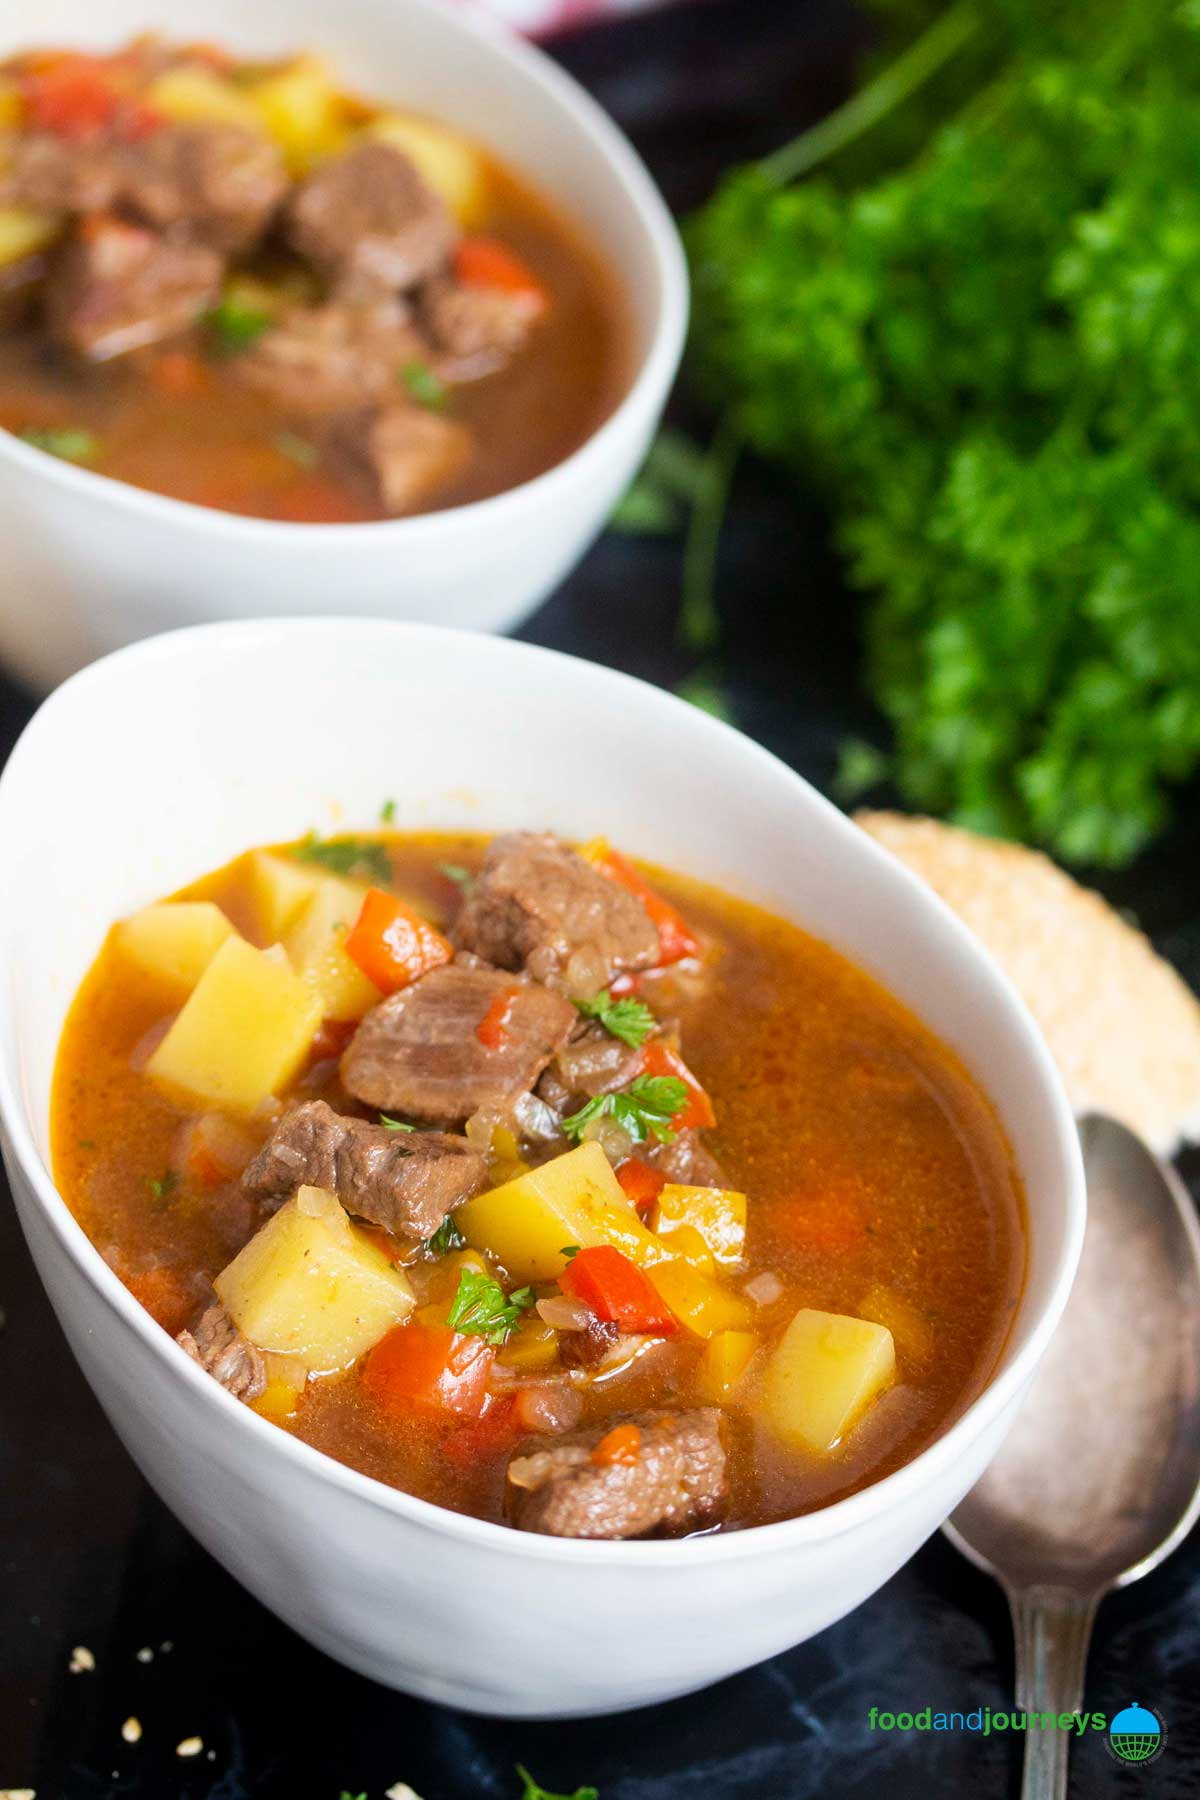 Two bowls of German Goulash Soup, ready for serving, with a slice of bread on the side.